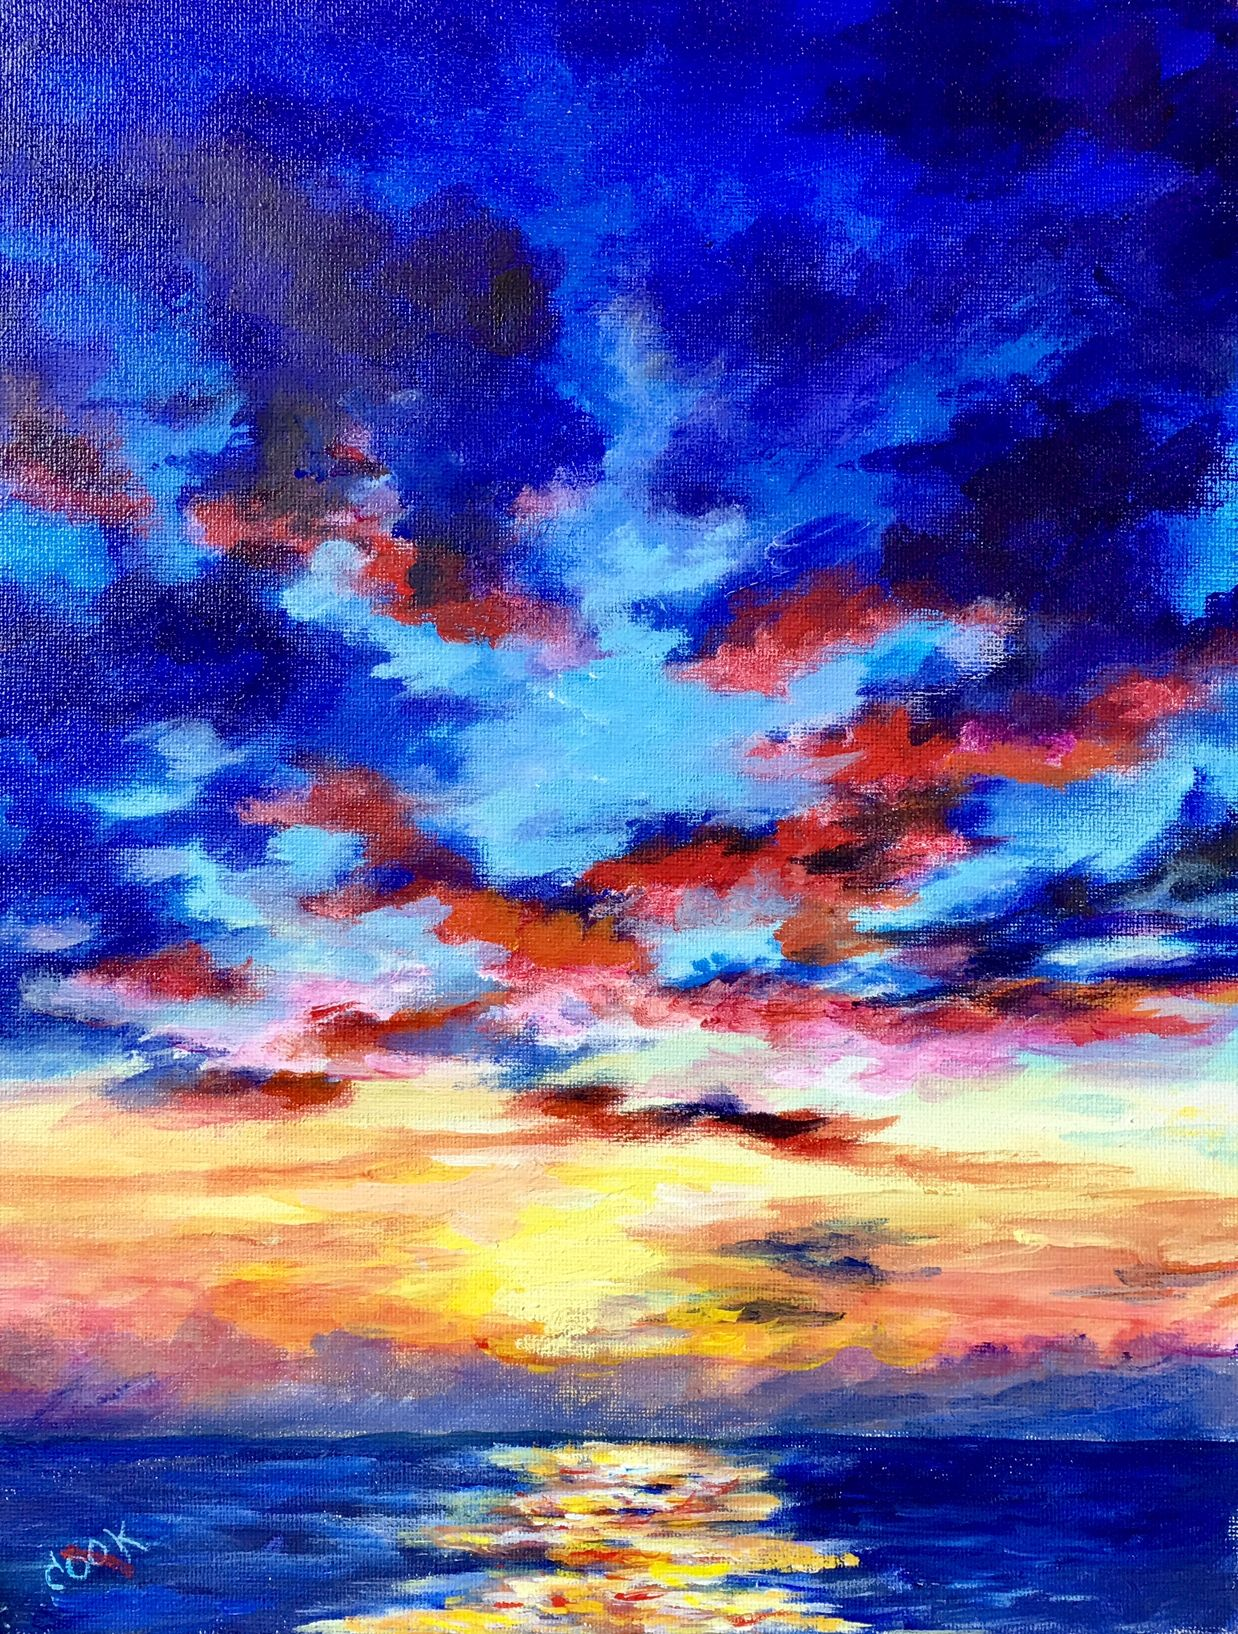 SUNSET AT SEA is this weeks (april 27) release for our VLL subscribing members. this 11x14 acrylic tutorial is an in depth look at painting sky and water.